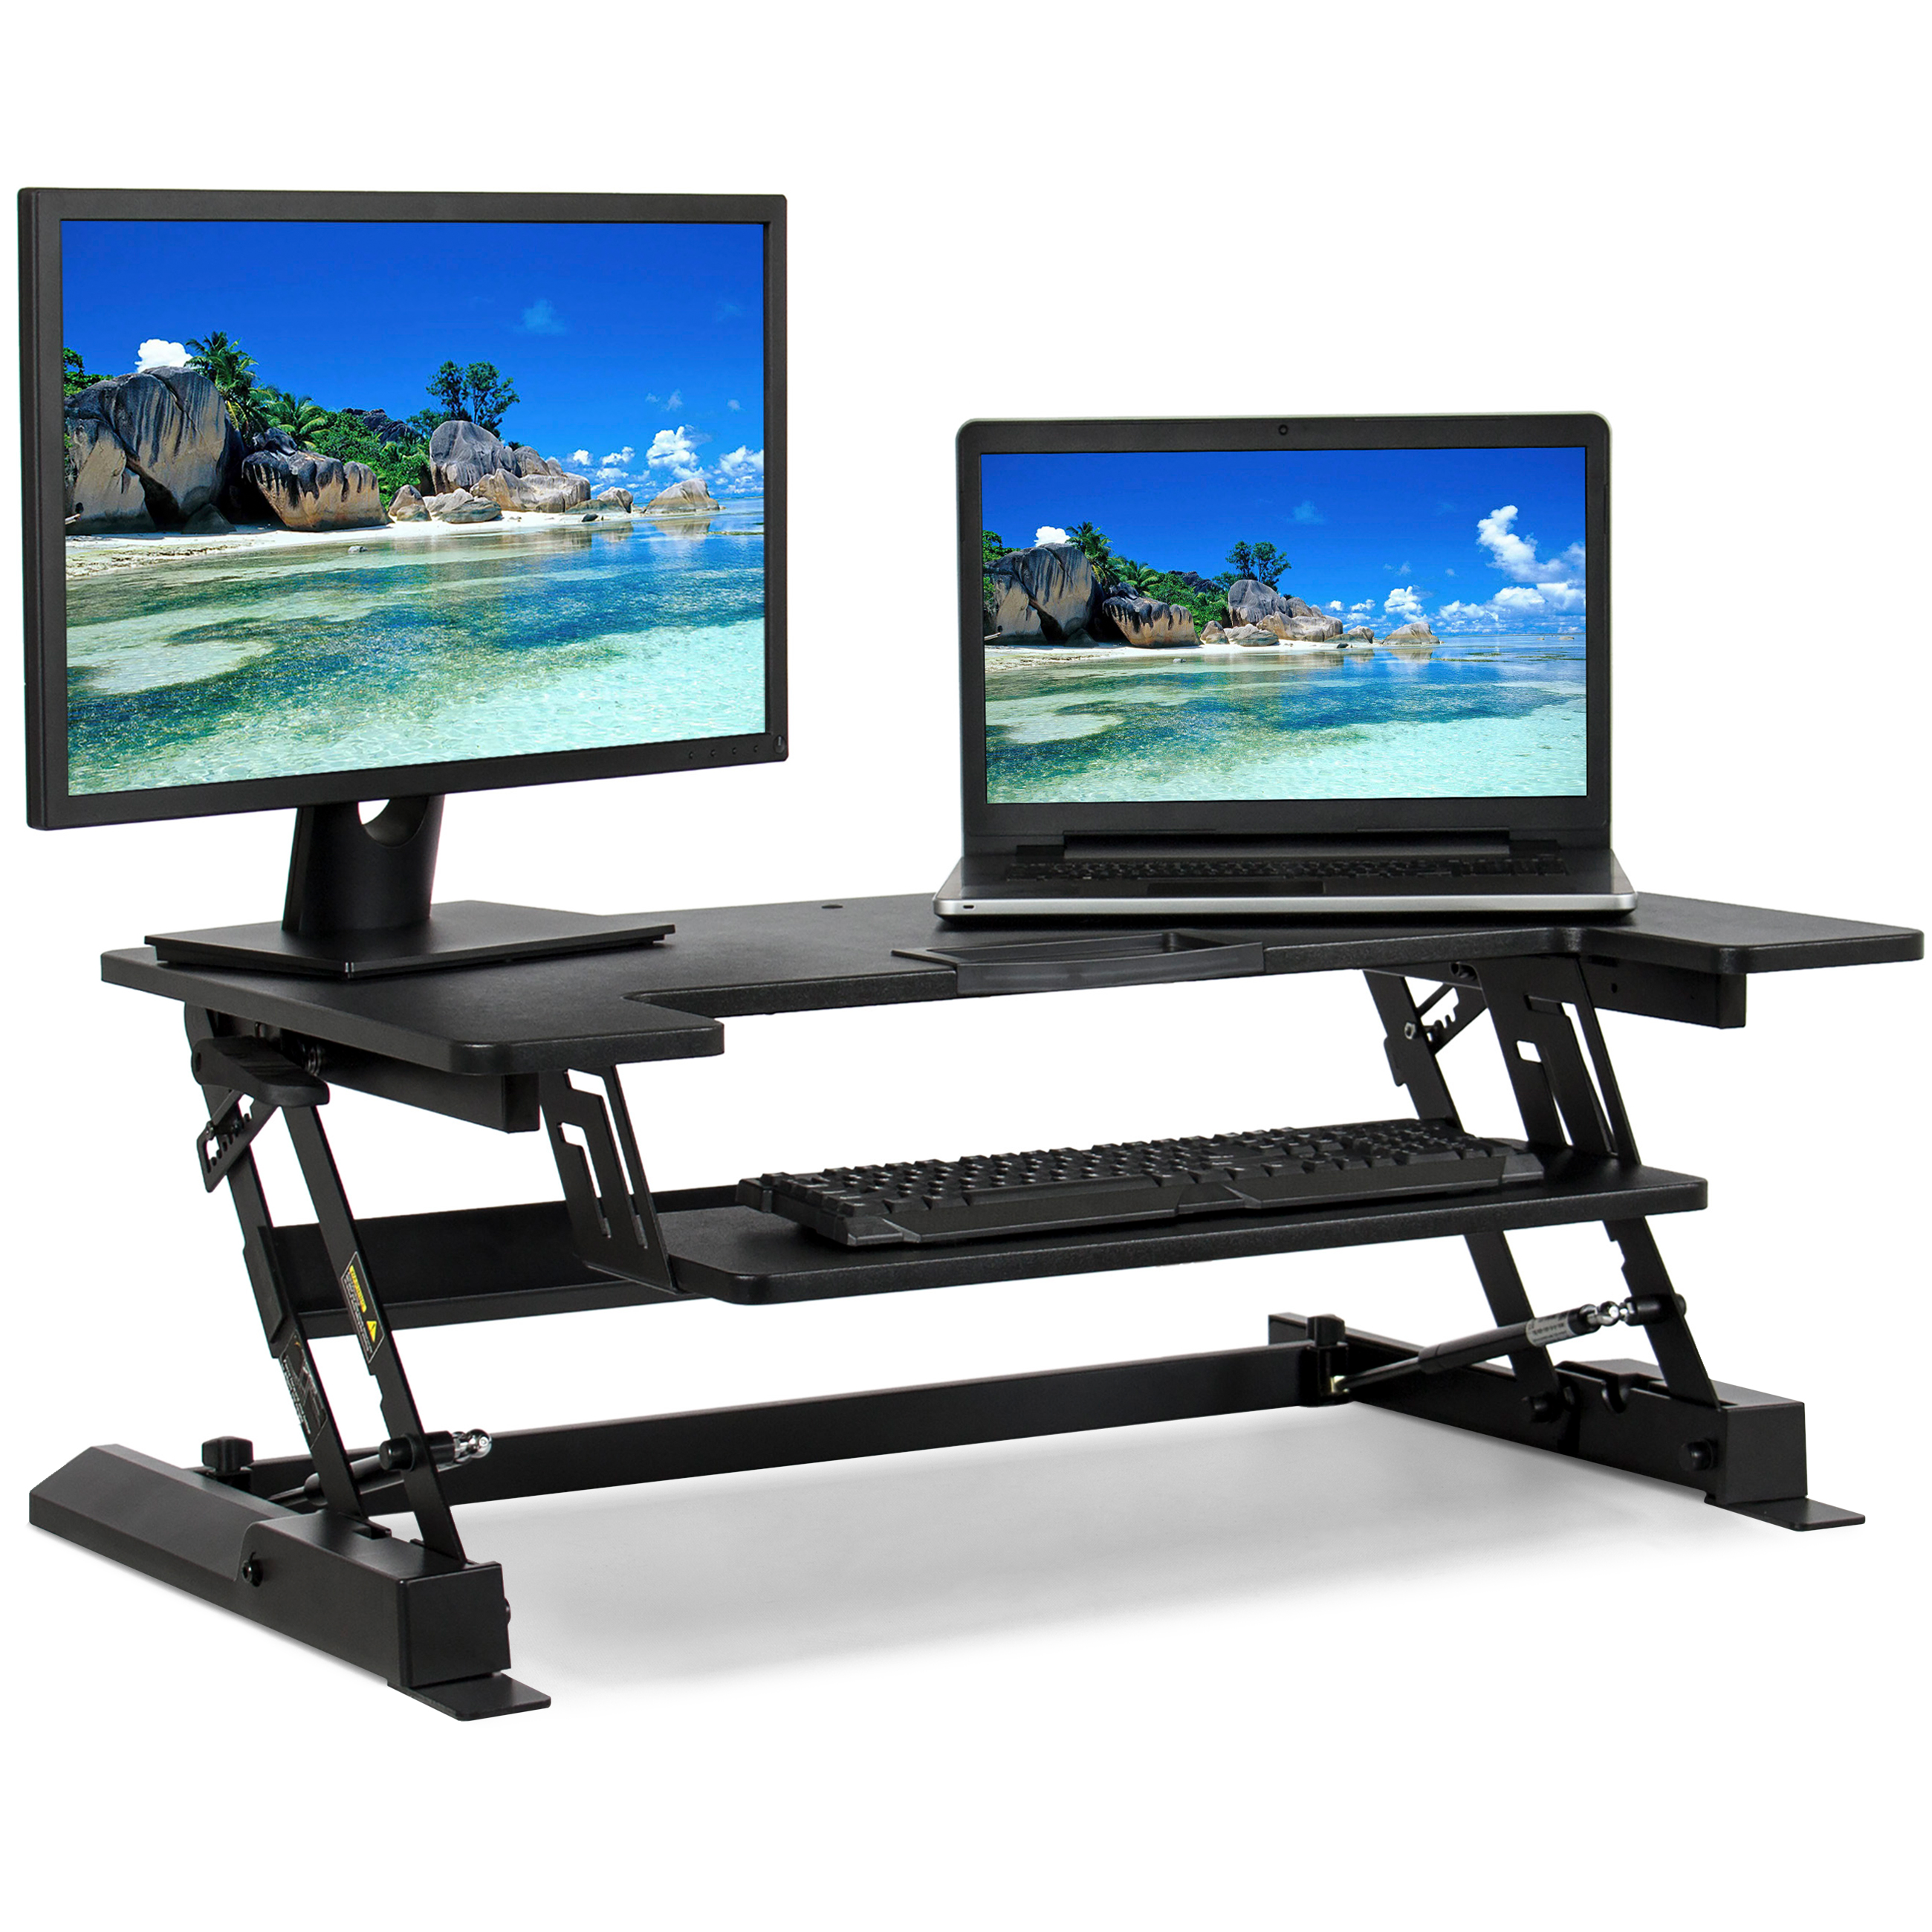 Best Choice Products 36in Height Adjustable Standing Tabletop Desk Sit to Stand Workstation Monitor Riser w/ Gas Spring